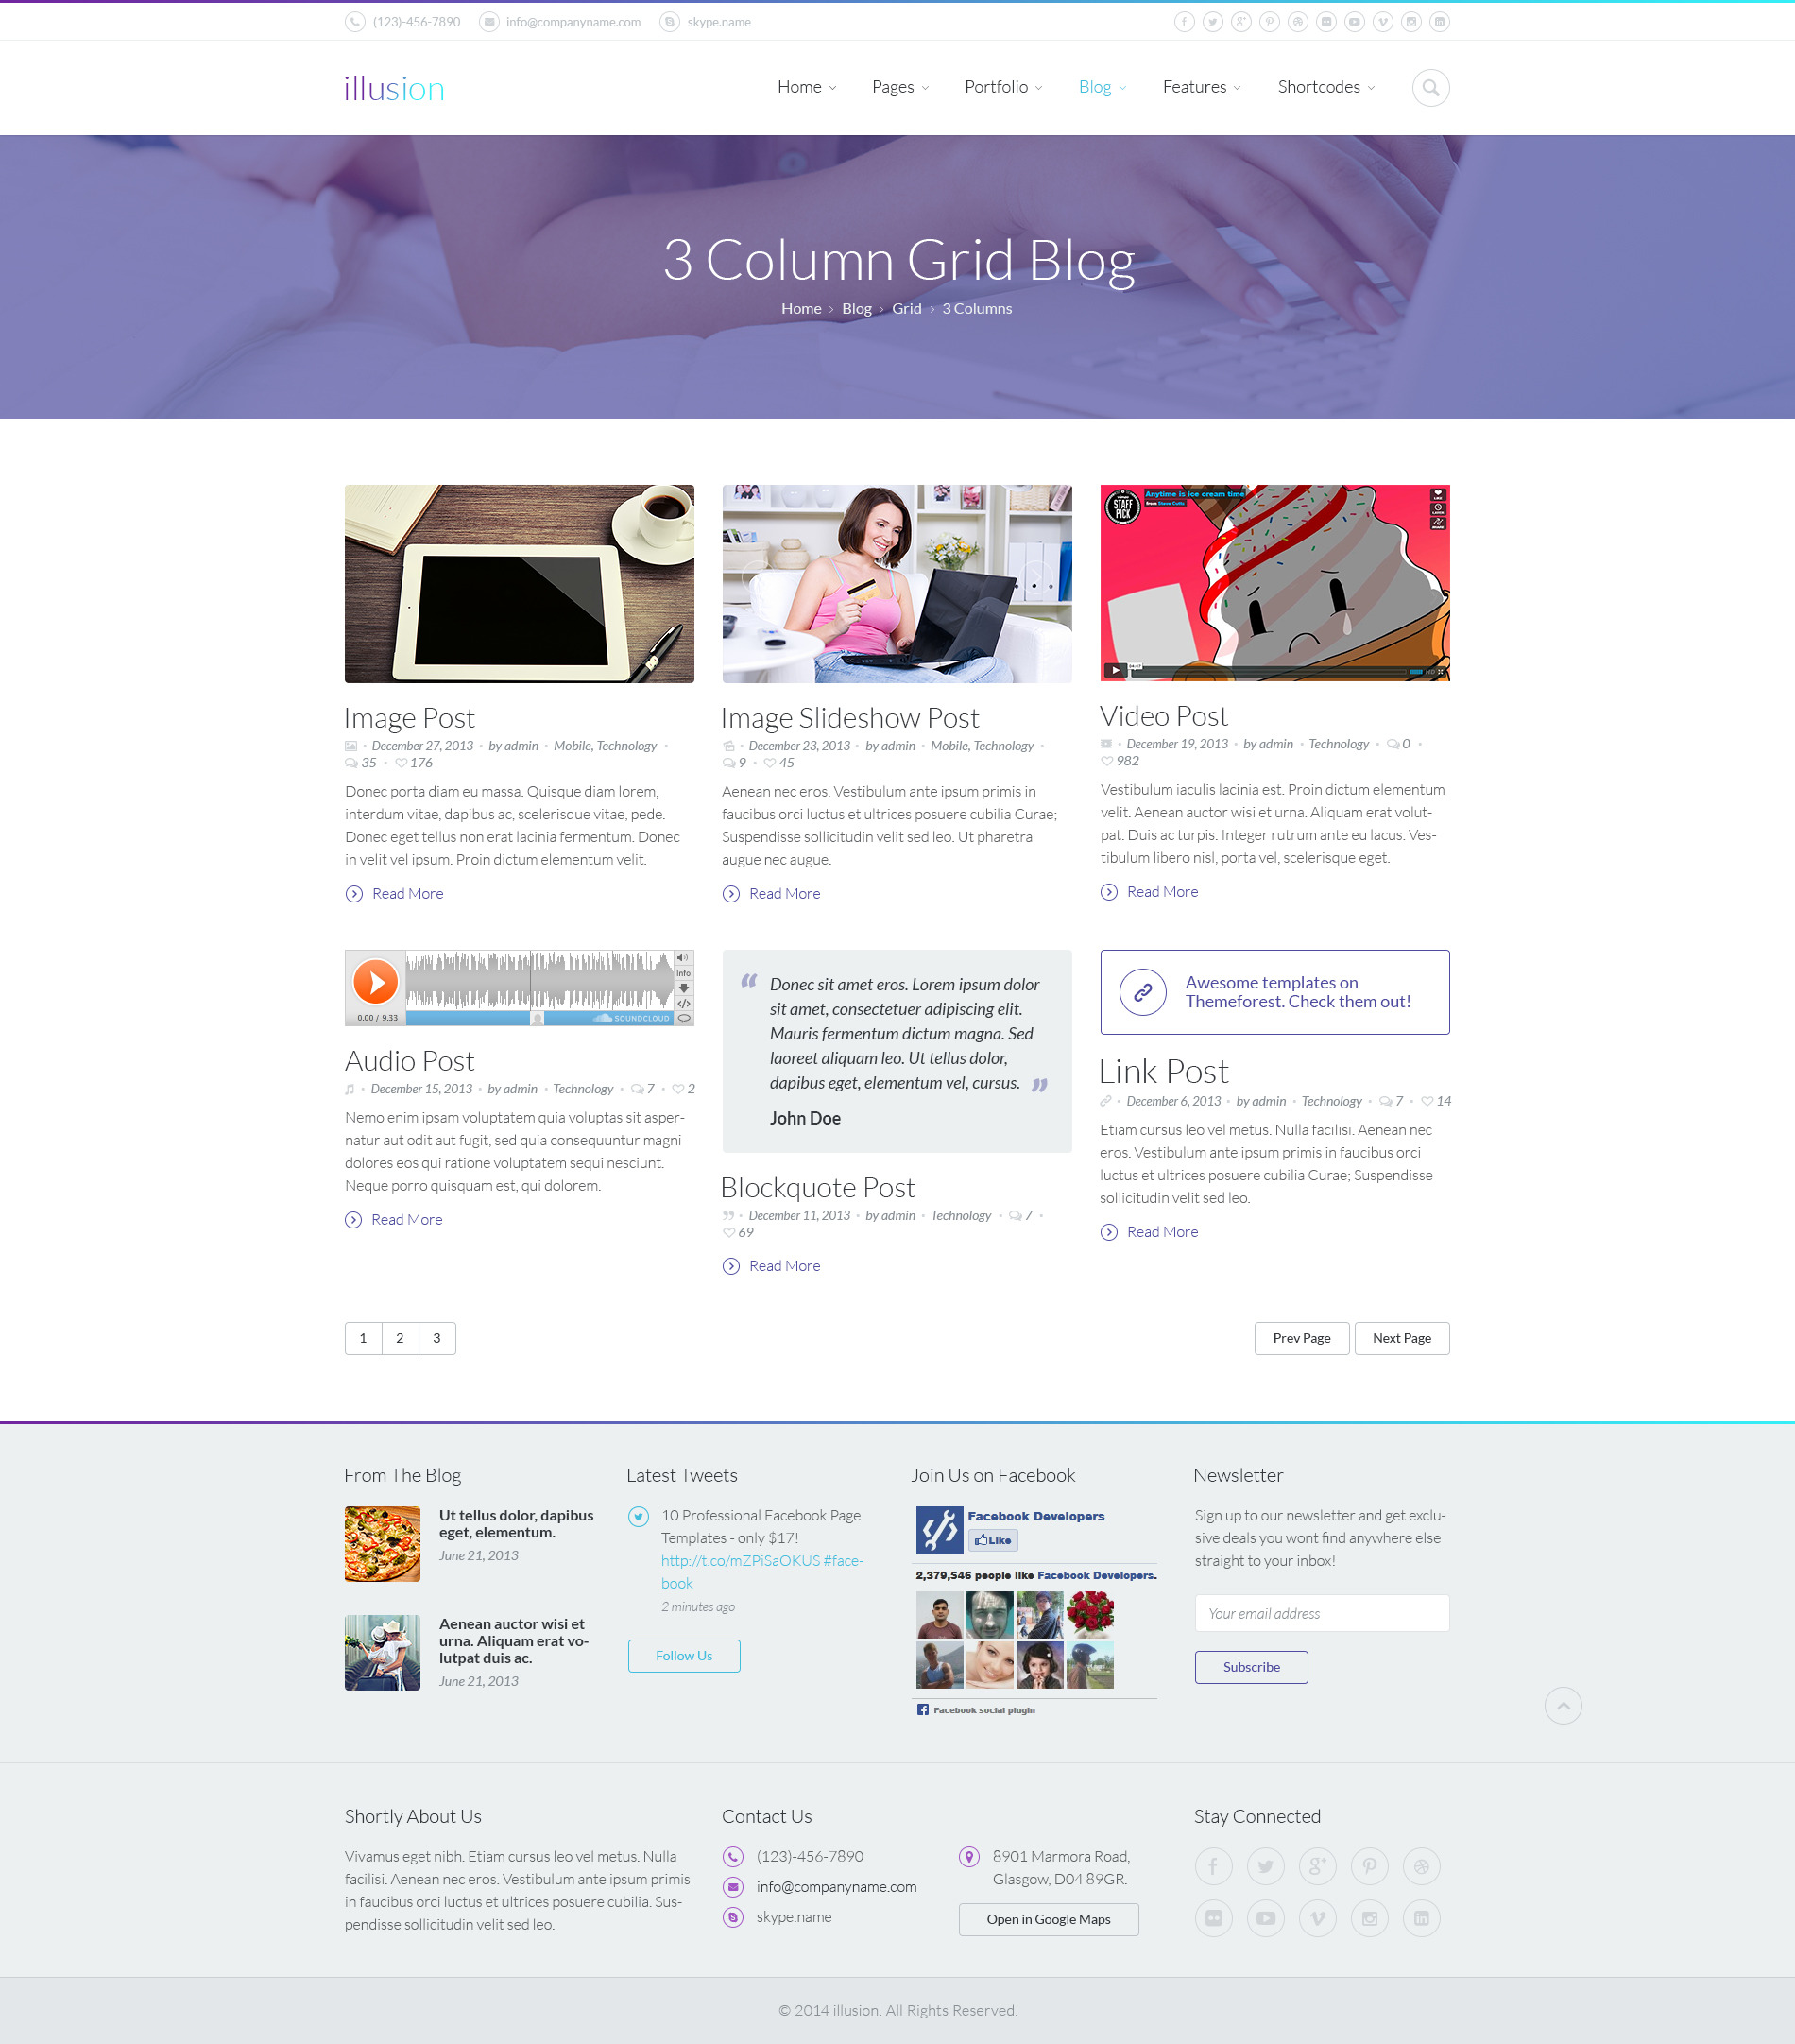 illusion - Premium PSD Template